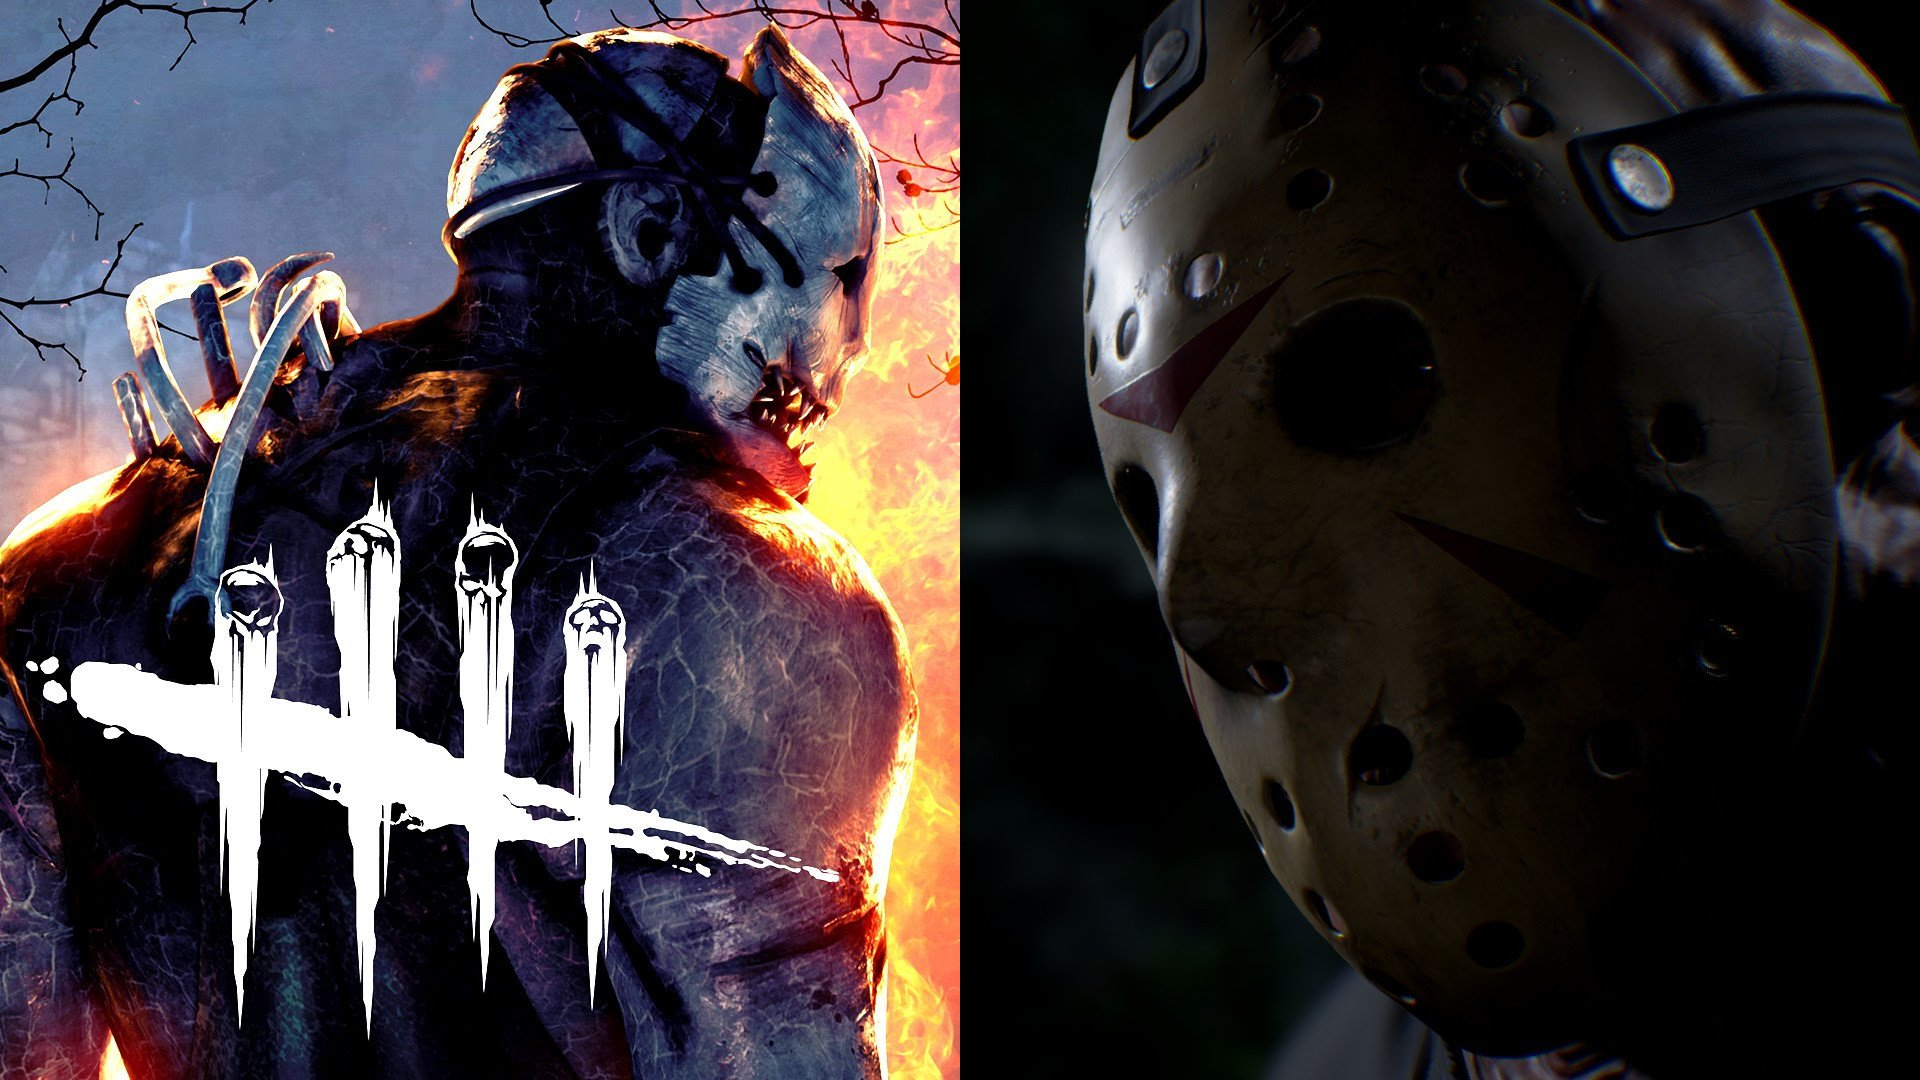 Friday The 13th Game Wallpaper: Friday The 13th The Game Wallpapers (42 Wallpapers